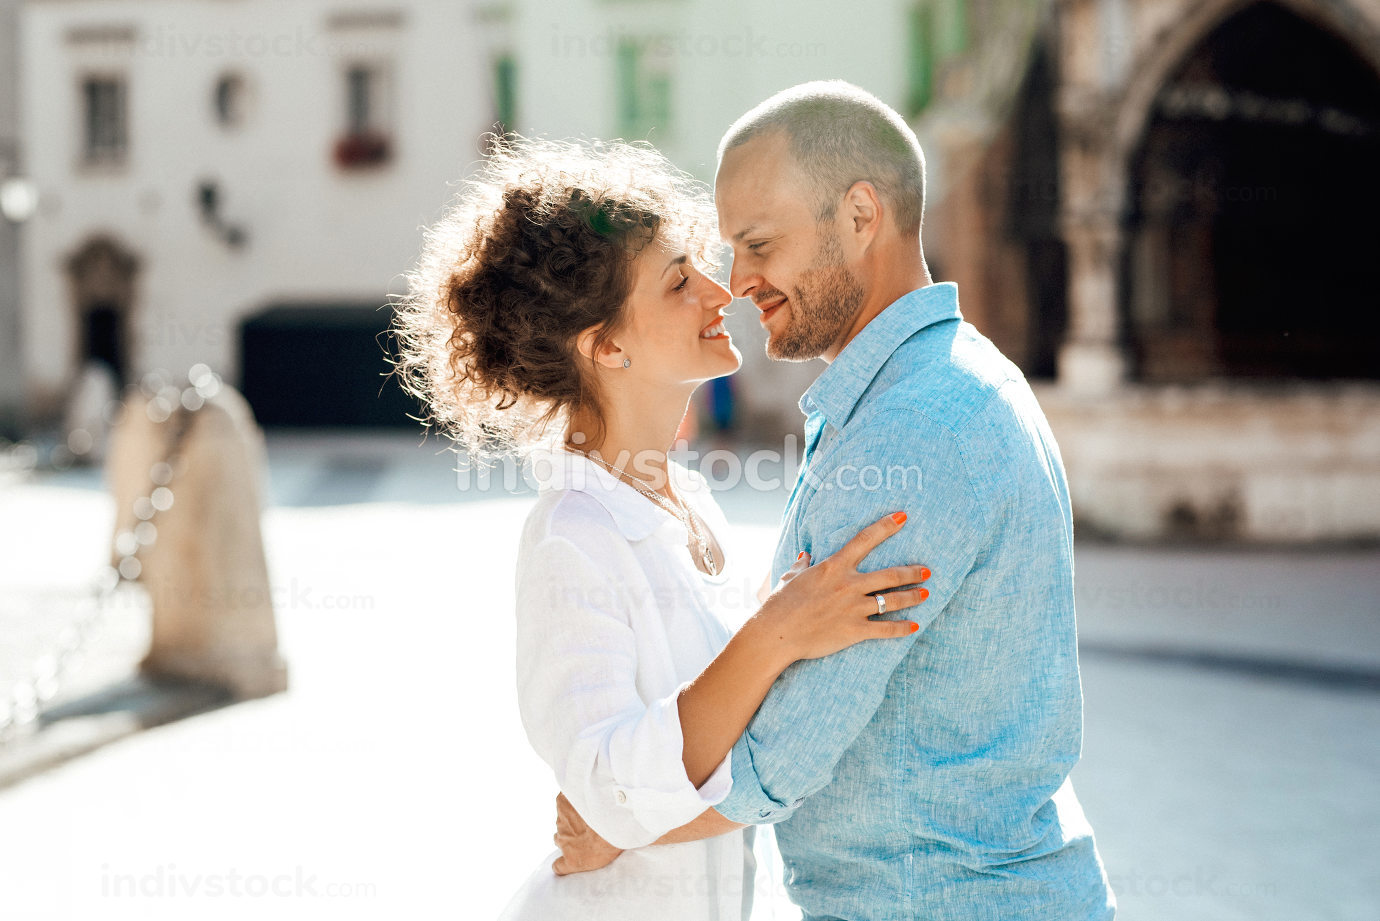 guy and a girl happily walk in the morning on the empty streets